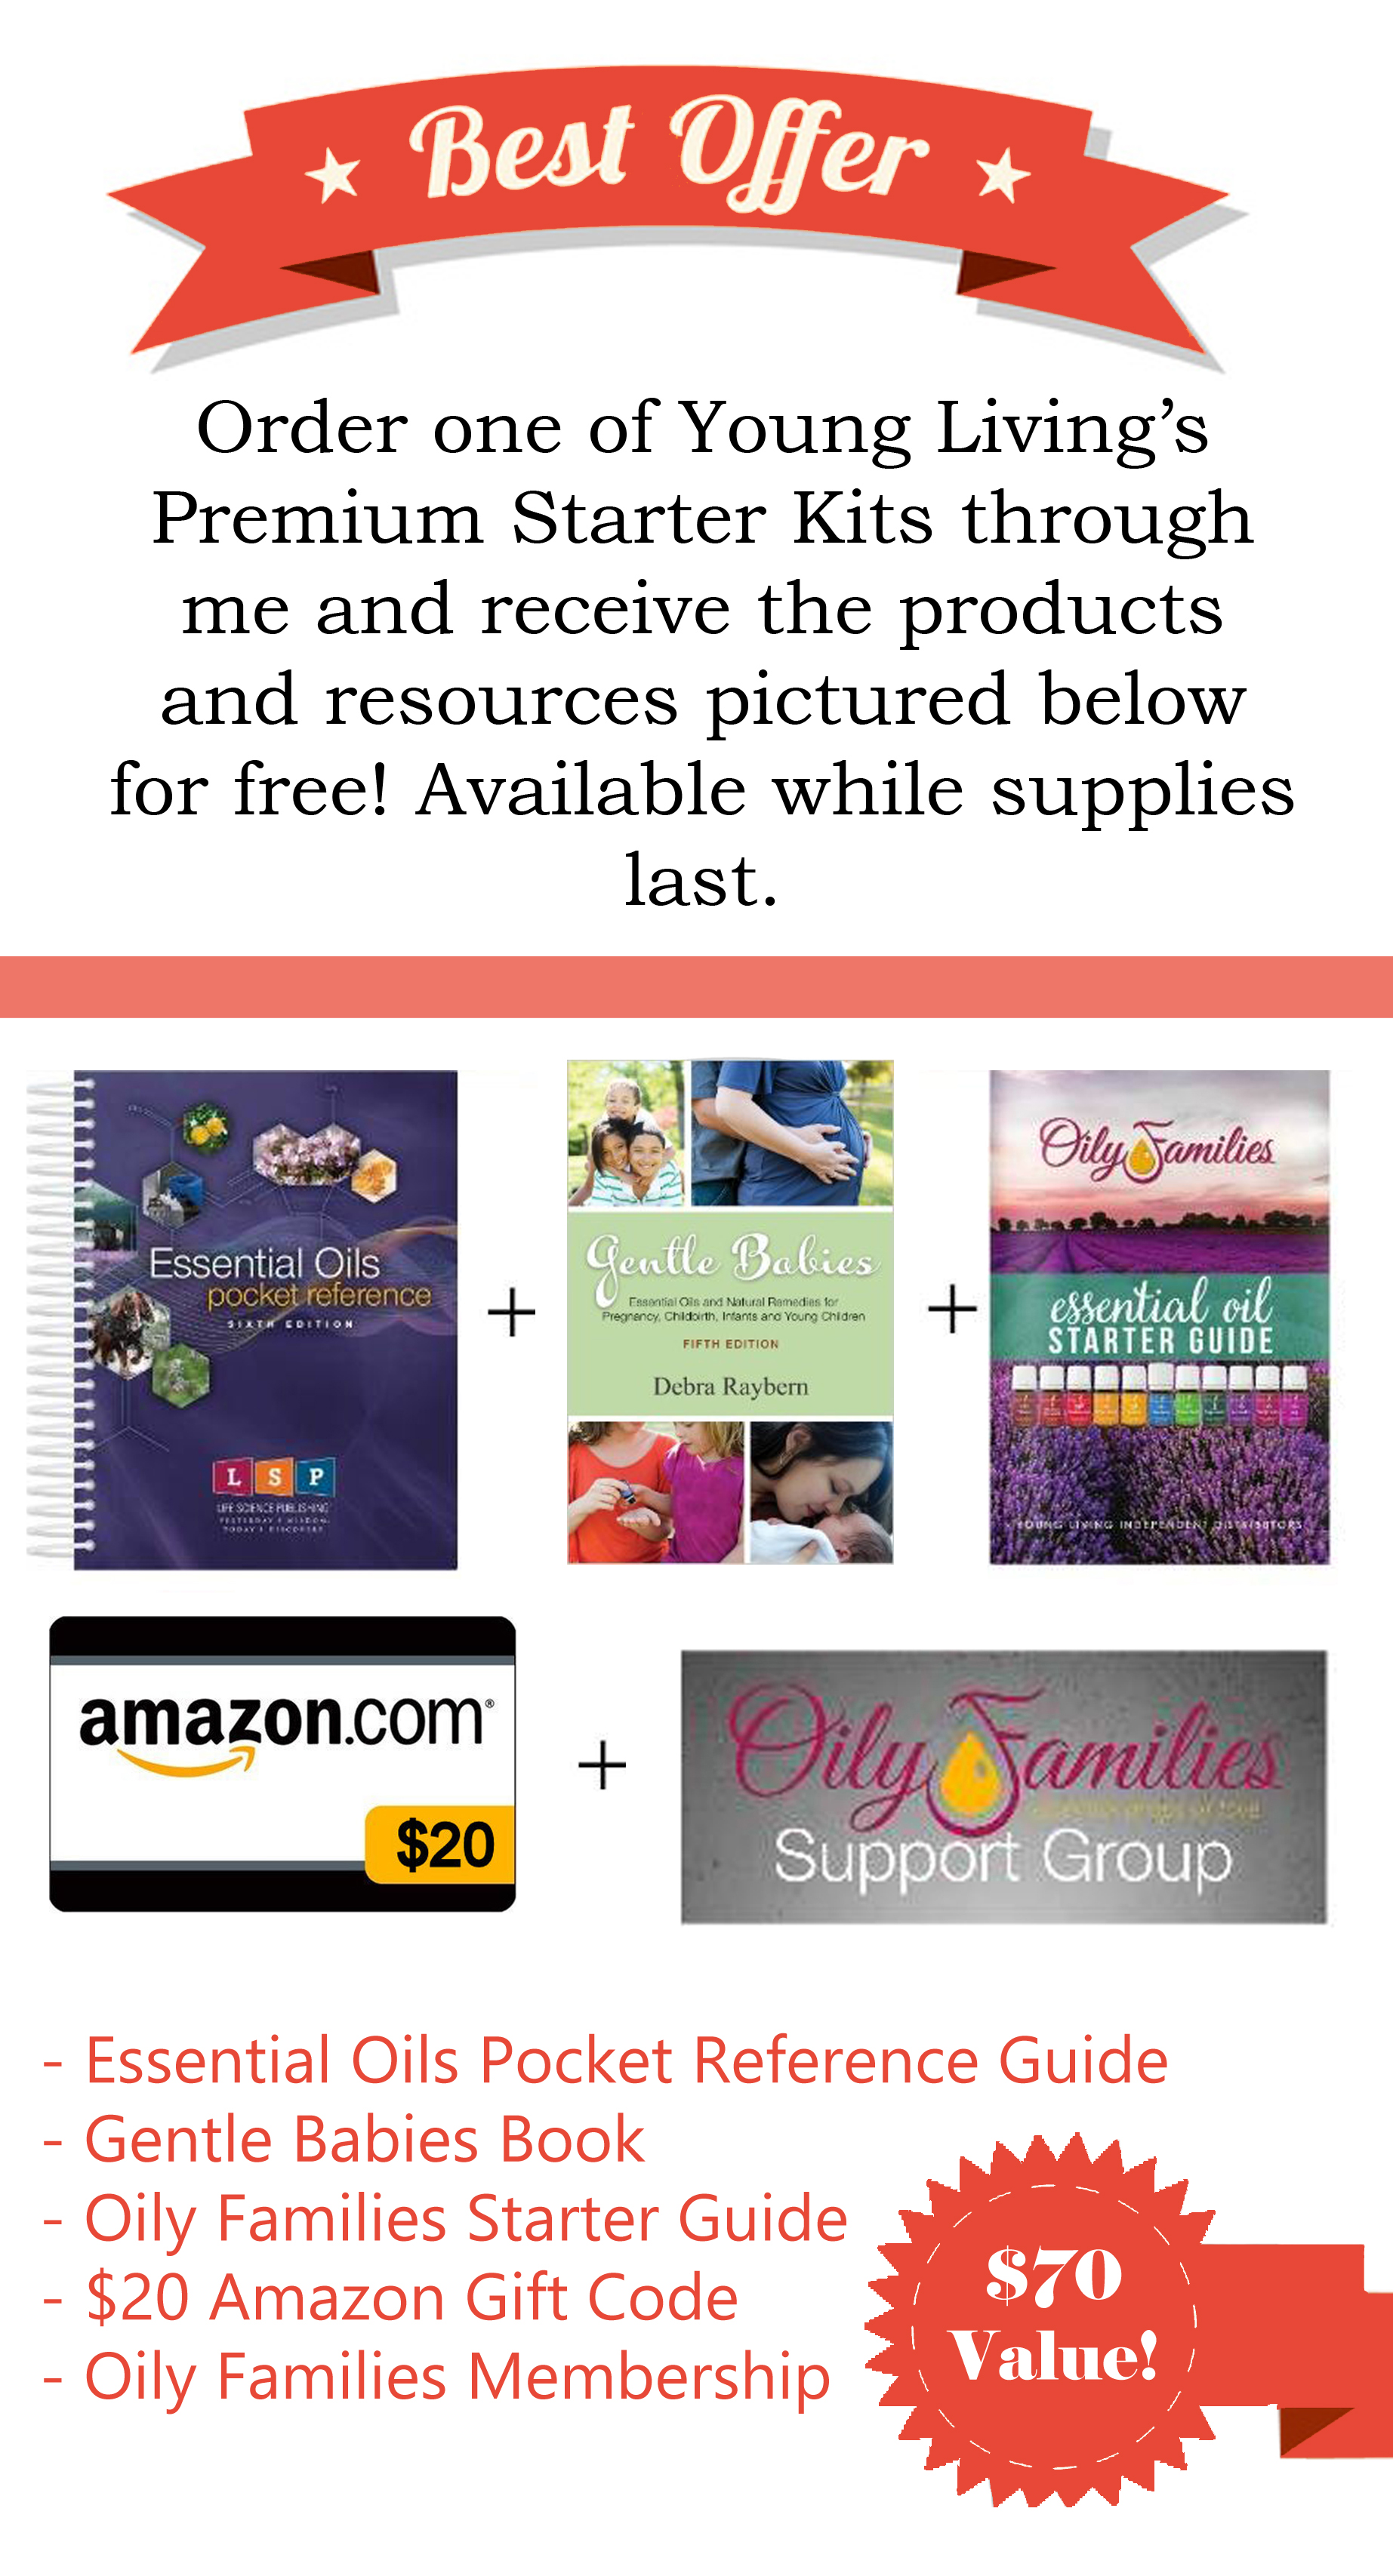 young living special offer promo april 2015